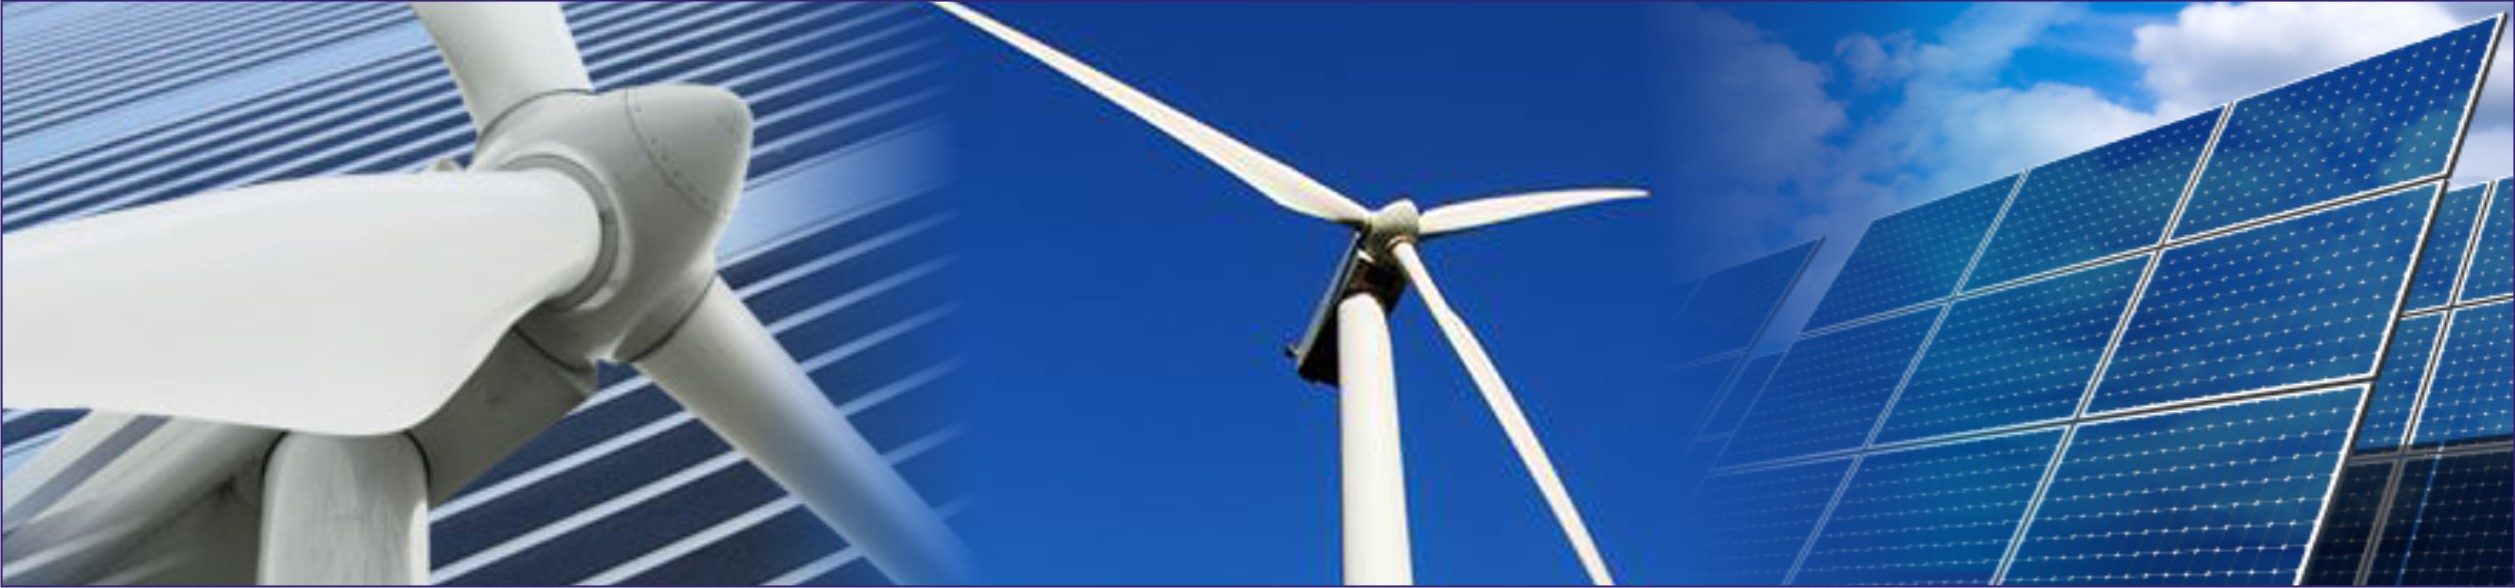 essay on solar and wind energy Eco-friendly alternative energy search this site home these include sources such as solar and wind wind energy is one of the cleanest.